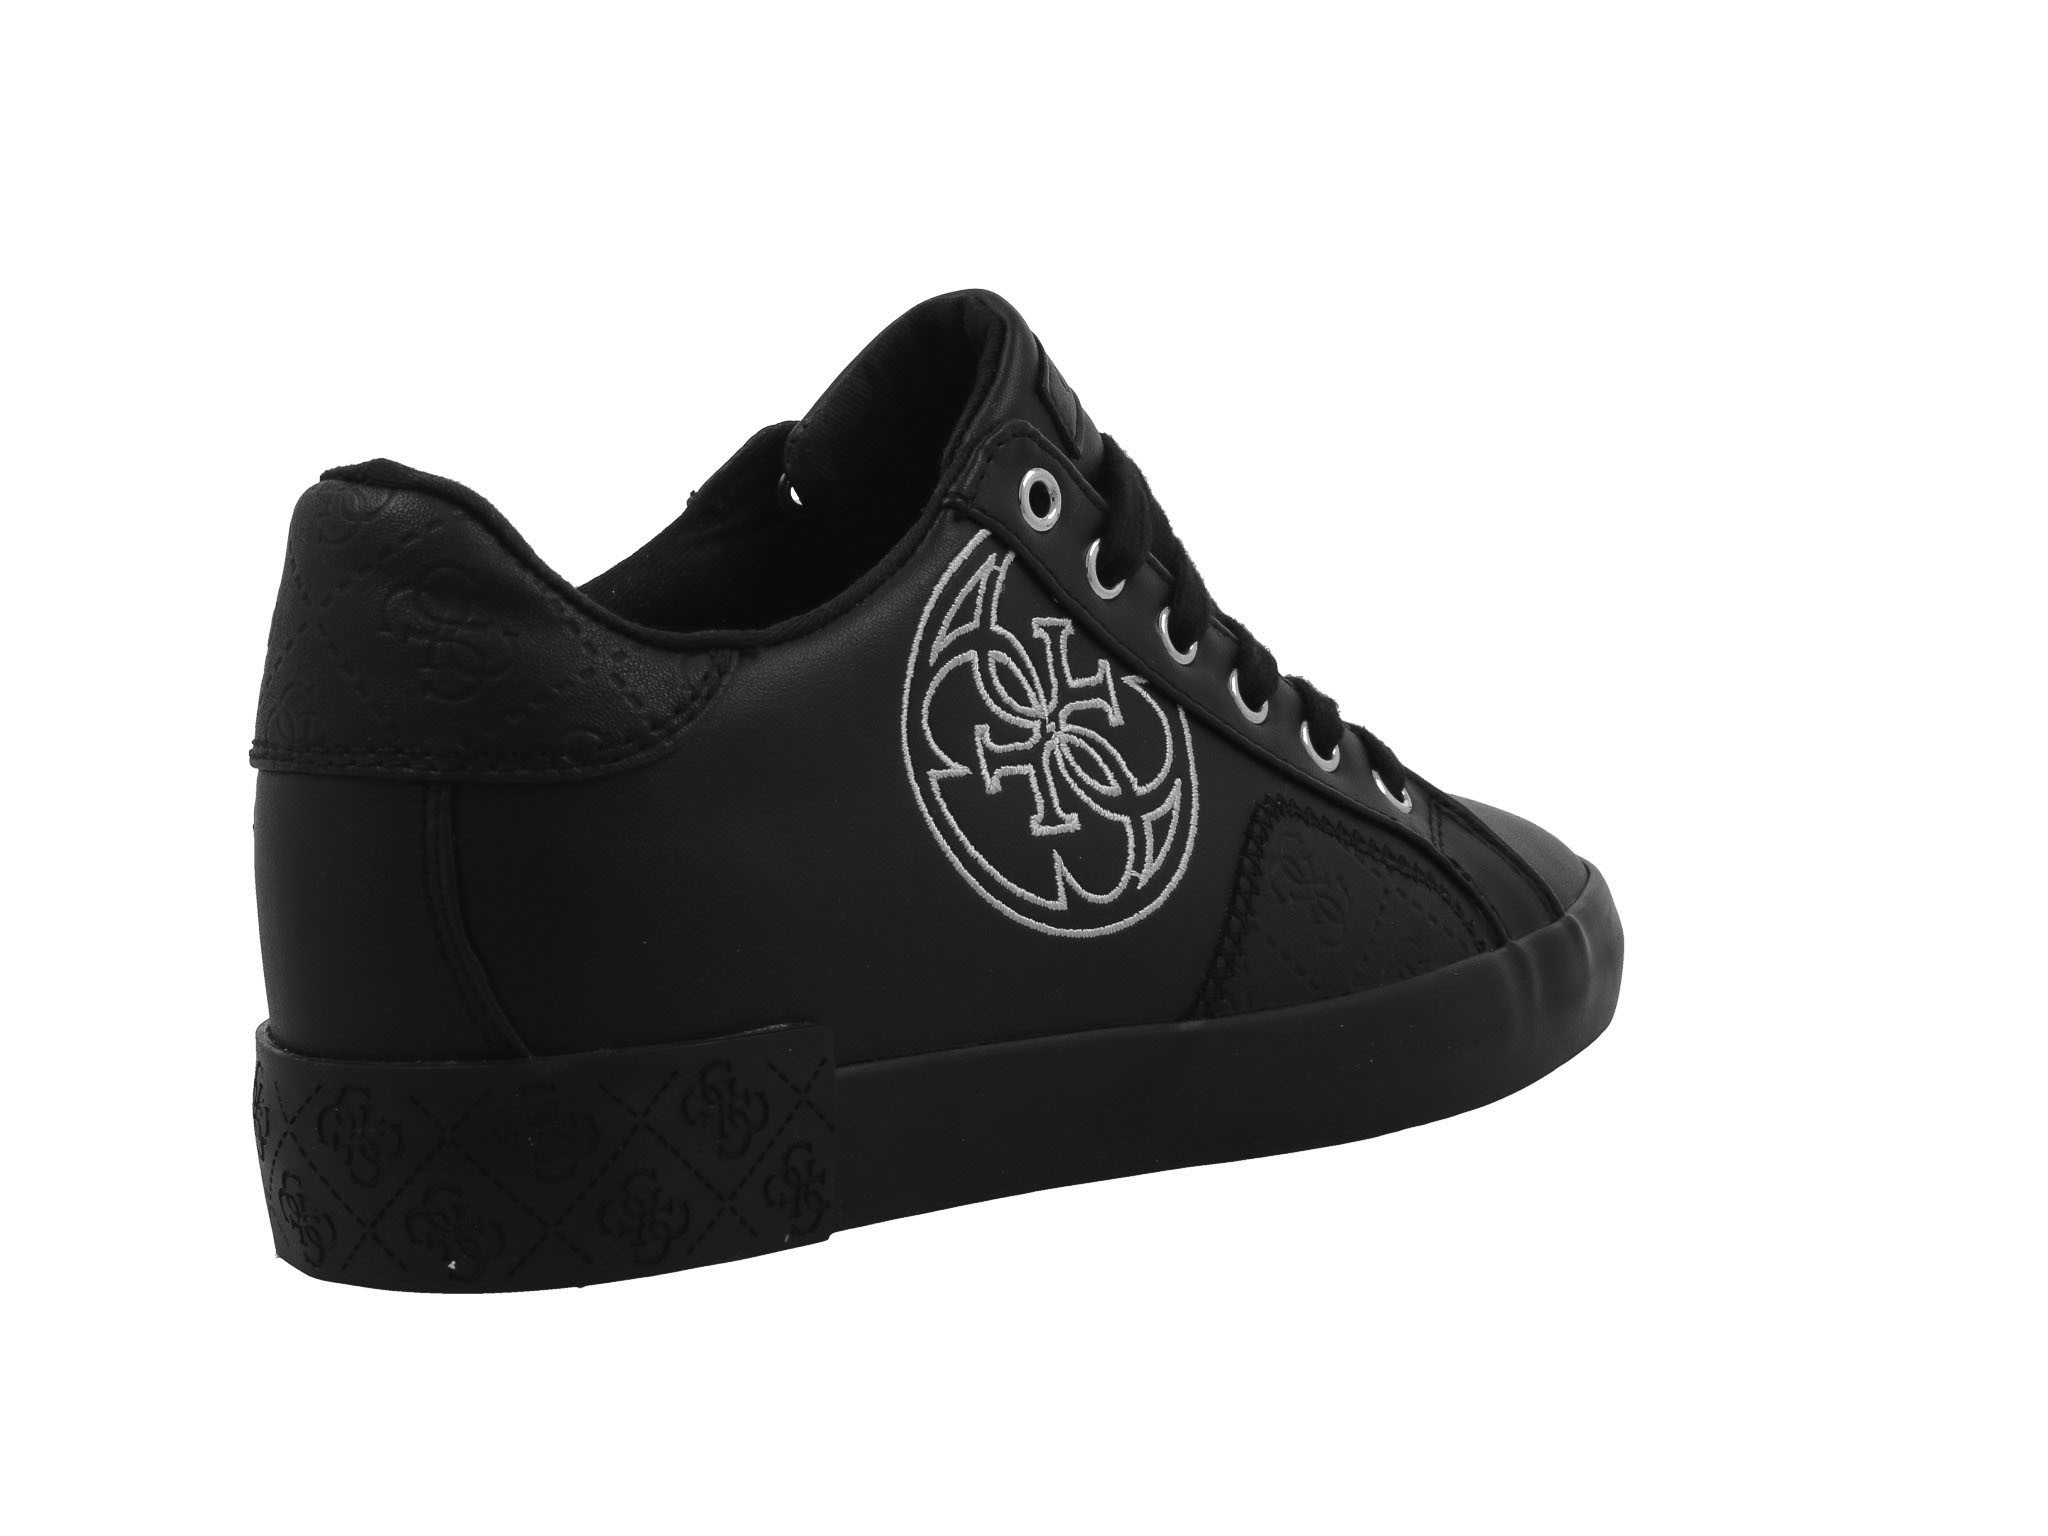 Sneakersy GUESS Pica FL7PIC ELE12 BLKBL Sneakersy